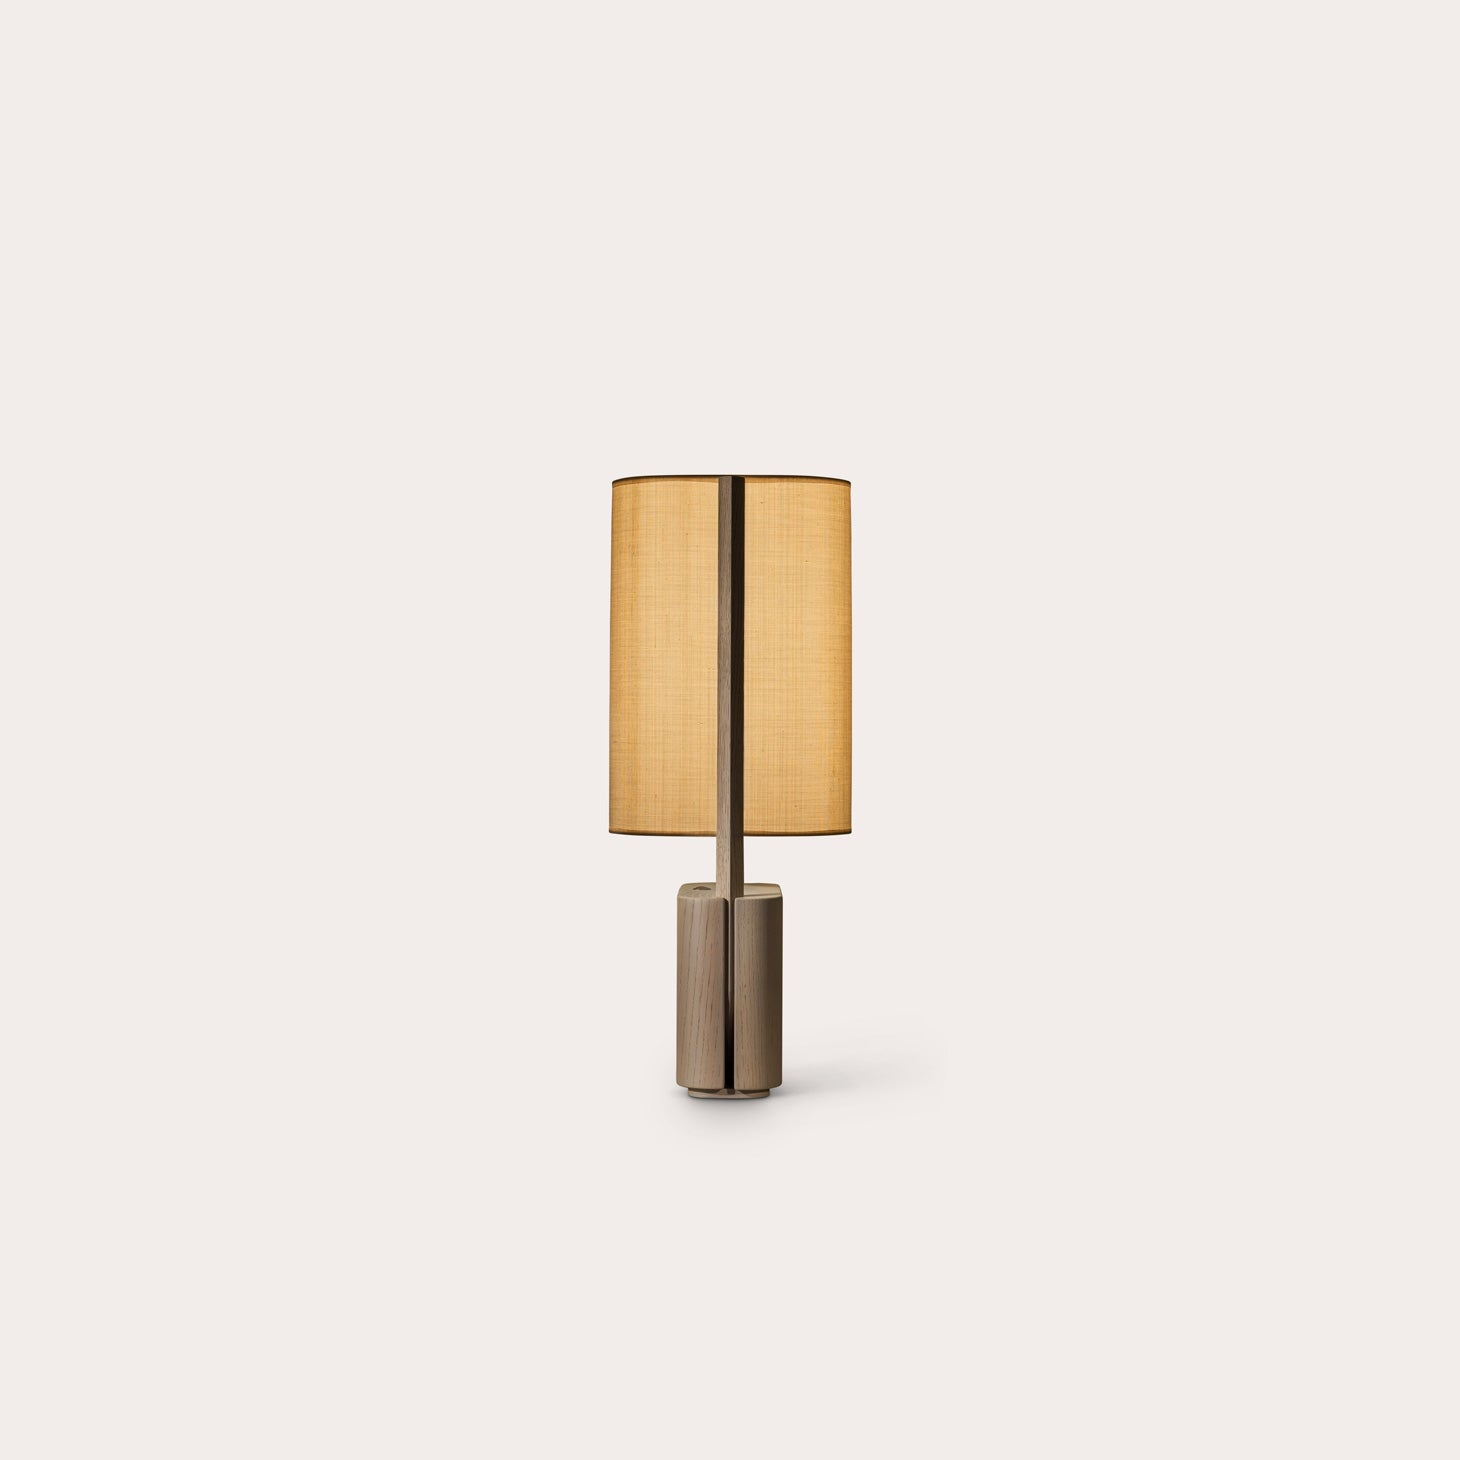 BARI Table Lamp Lighting Bruno Moinard Designer Furniture Sku: 773-160-10026